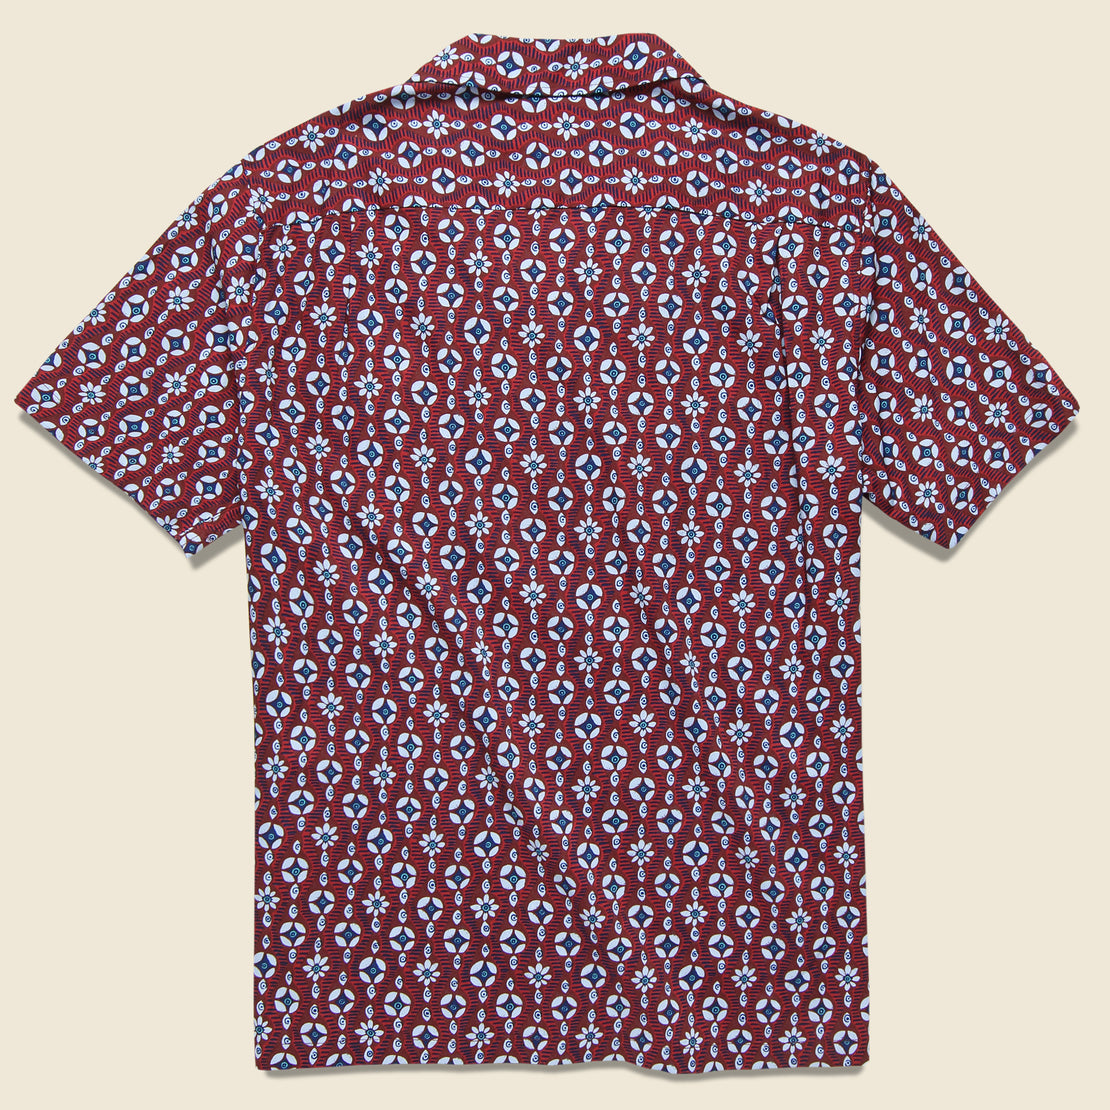 Eye See U Camp Shirt - Oxblood Red